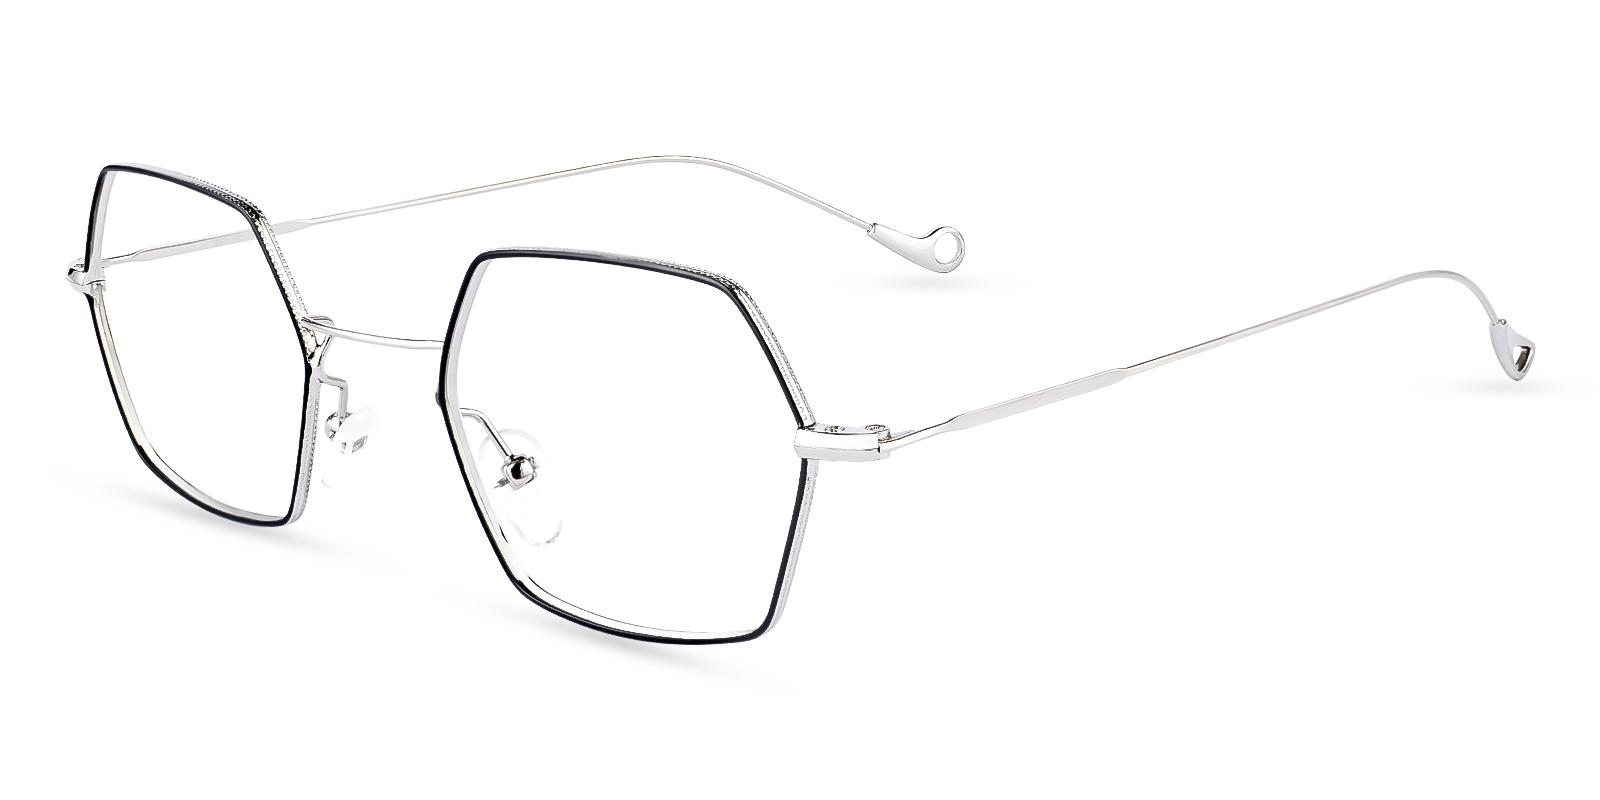 Crystal Multicolor Metal Eyeglasses , NosePads Frames from ABBE Glasses